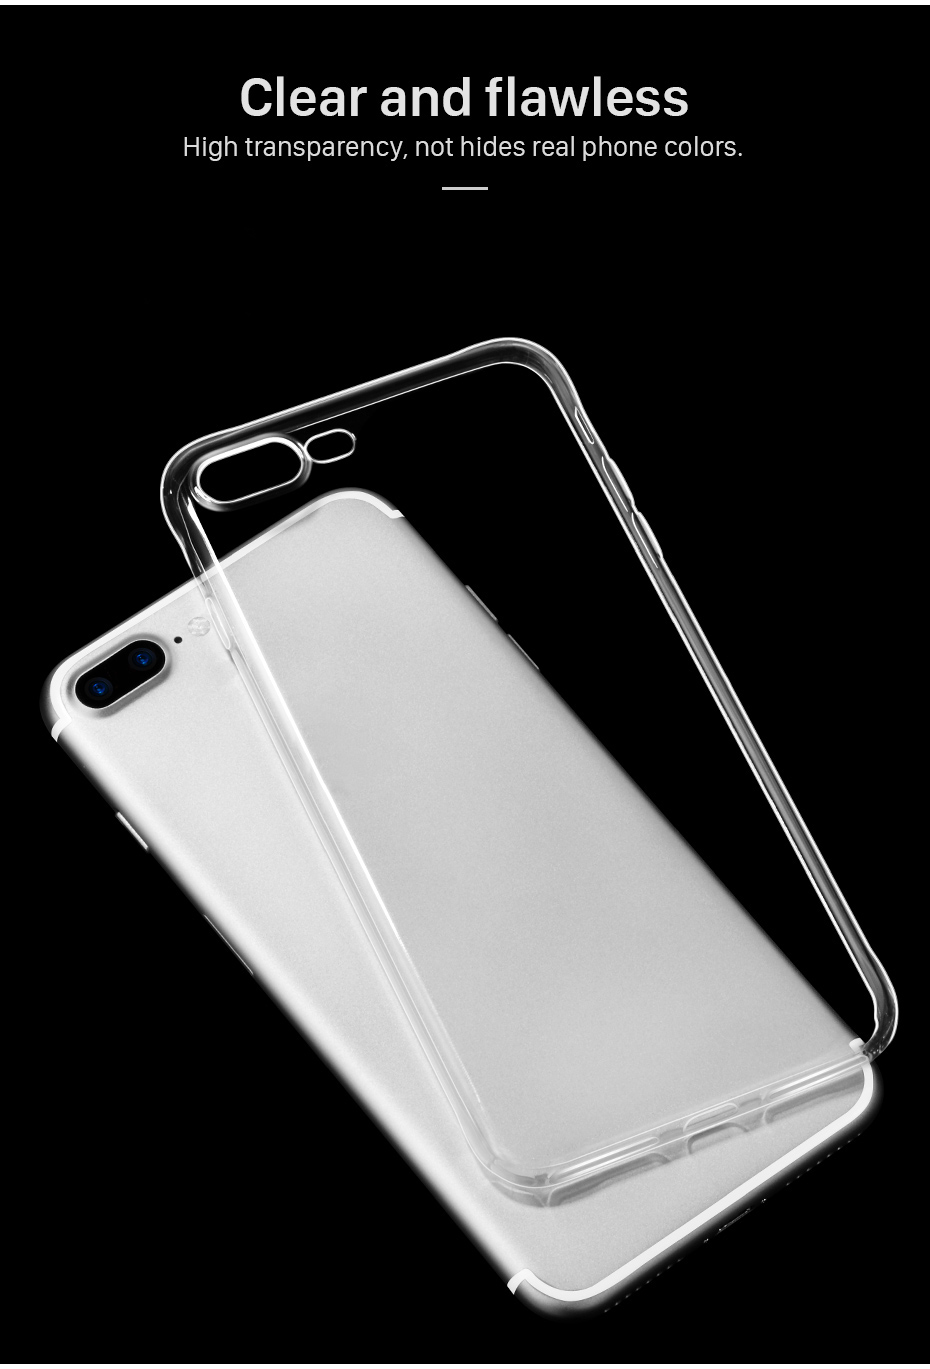 Bakeey™ 4D Curved Edge Tempered Glass Film With Transparent TPU Case for iPhone 7Plus